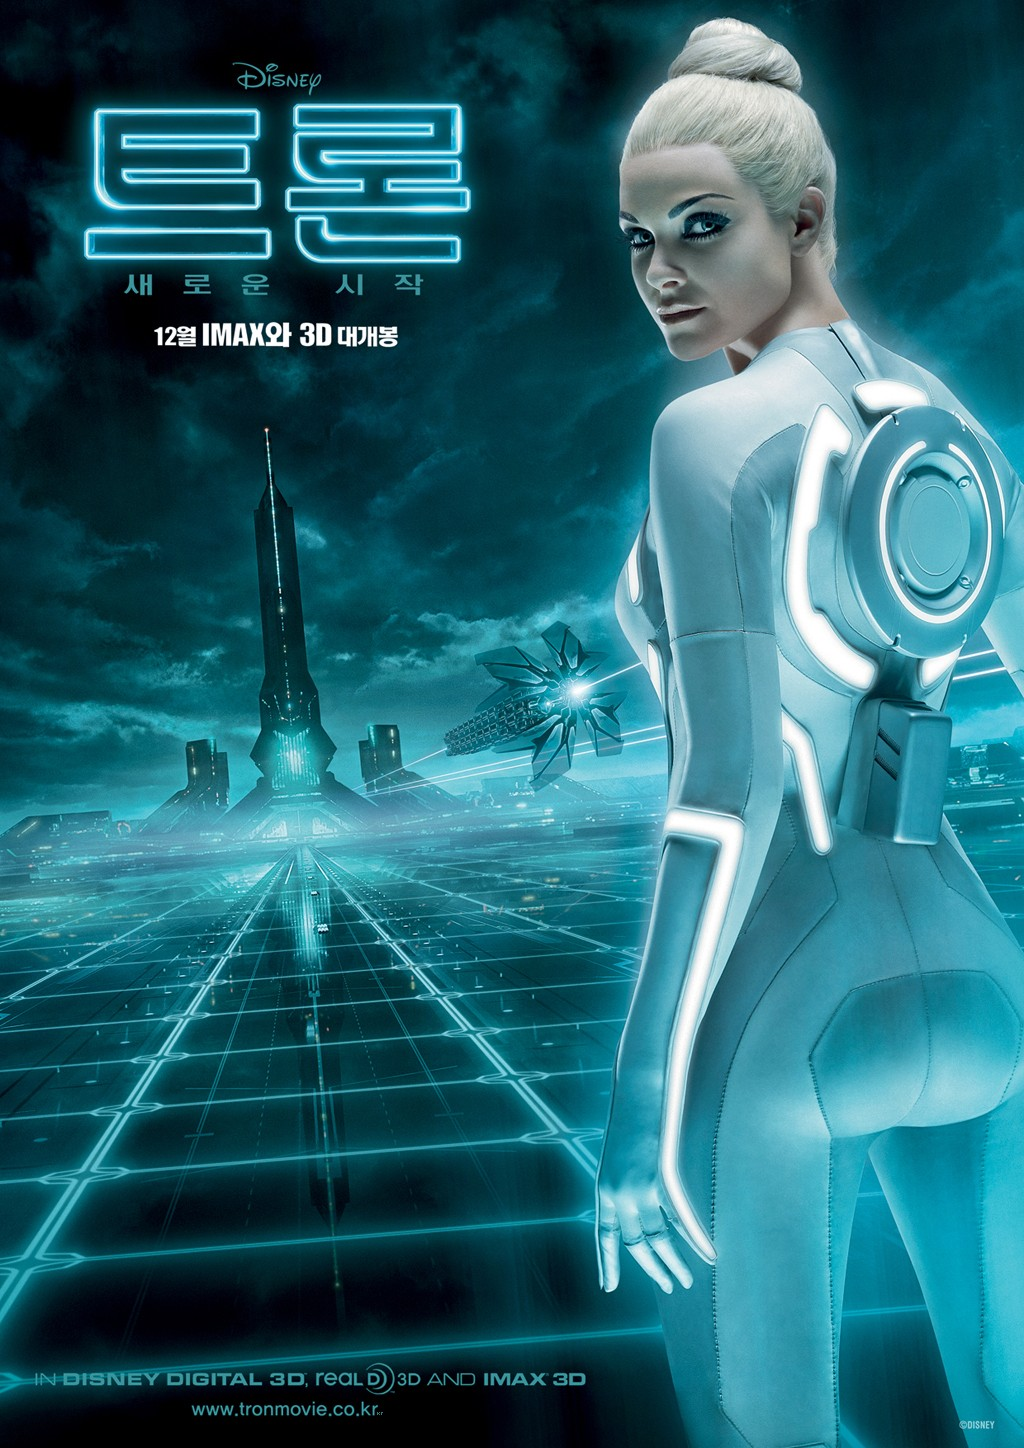 http://3.bp.blogspot.com/_w6GL1DCUVfk/TNdWVZKC0fI/AAAAAAAAFwI/Q-posT2x60c/s1600/tron_legacy_movie_poster_international_beau_garrett_01.jpg